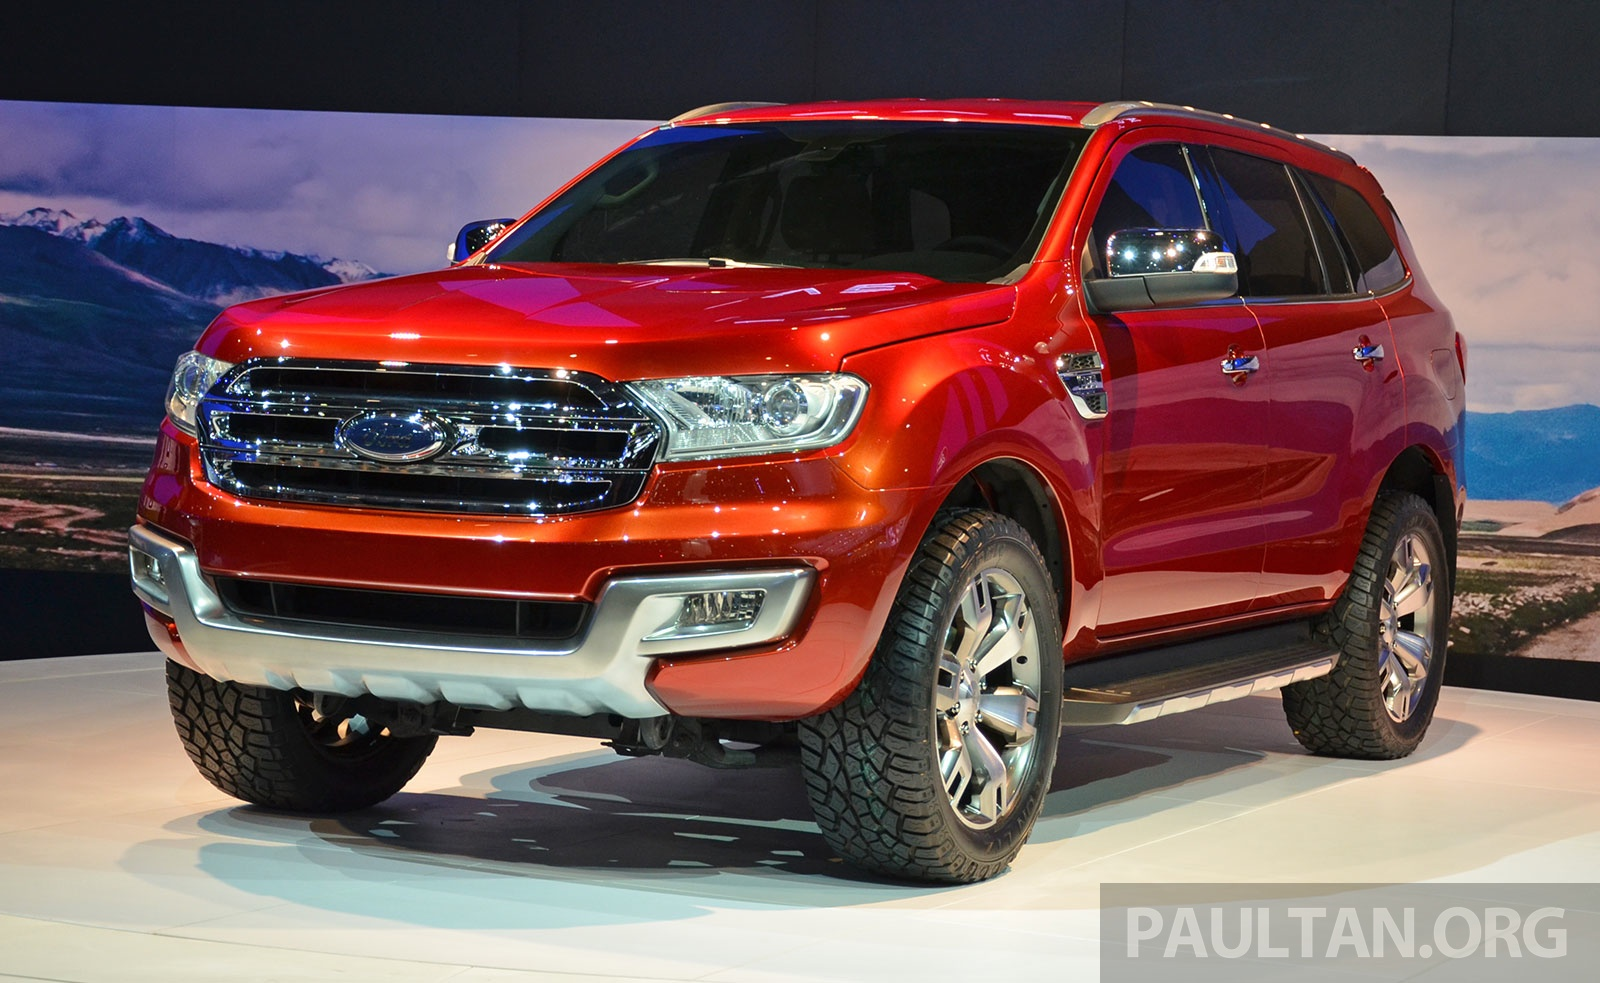 2015 ford everest reviews - 2015 Ford Everest Reviews 17